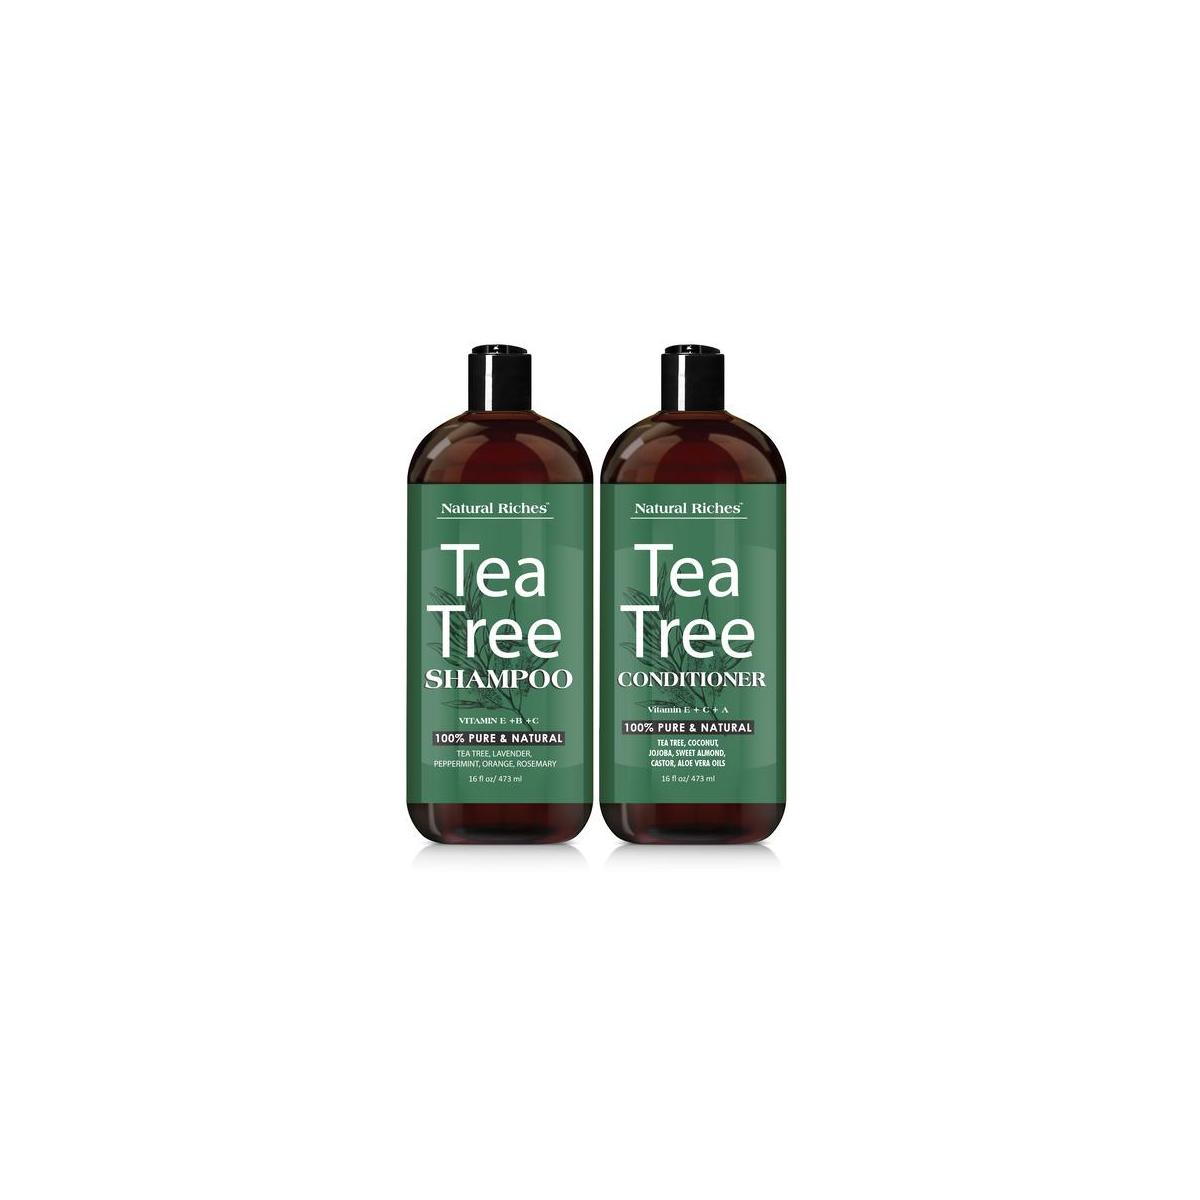 Sulfate free Tea tree oil Shampoo & Conditioner Set by Natural Riches - Deep Cleansing for Dandruff, Dry Scalp & Itchy Hair  2x16oz …